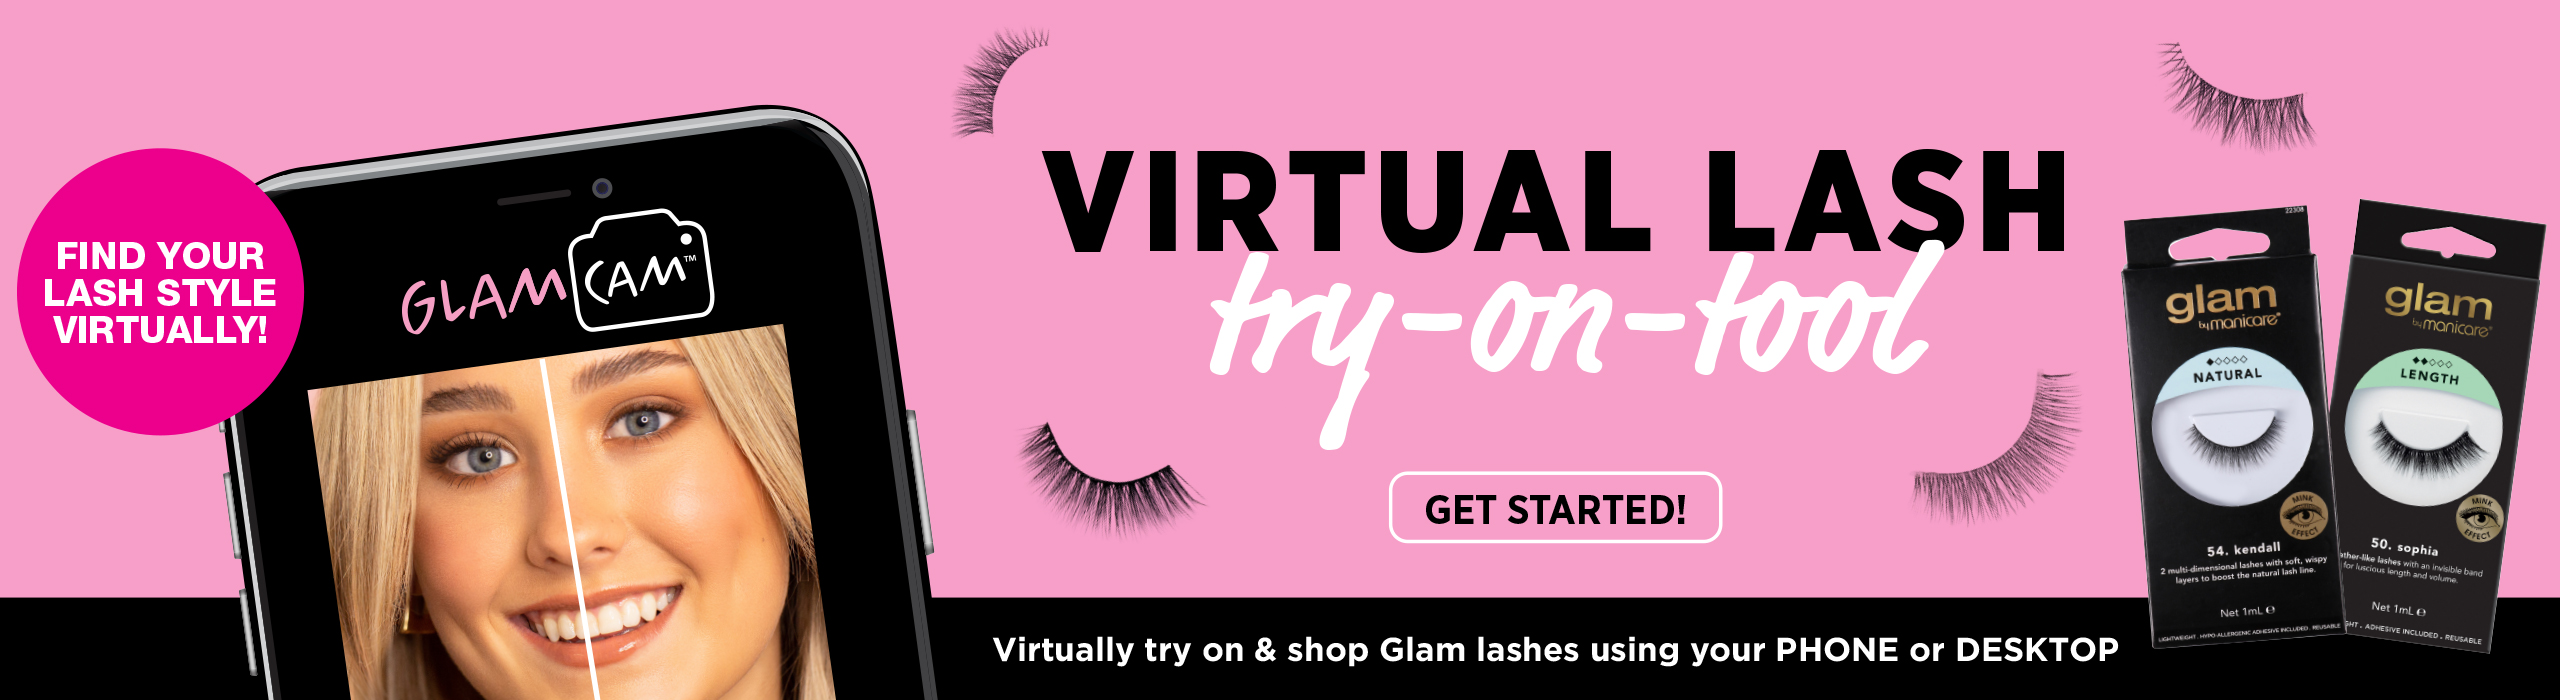 Virtual Lash Try-On-Tool. Find your Glam lash style virtually!